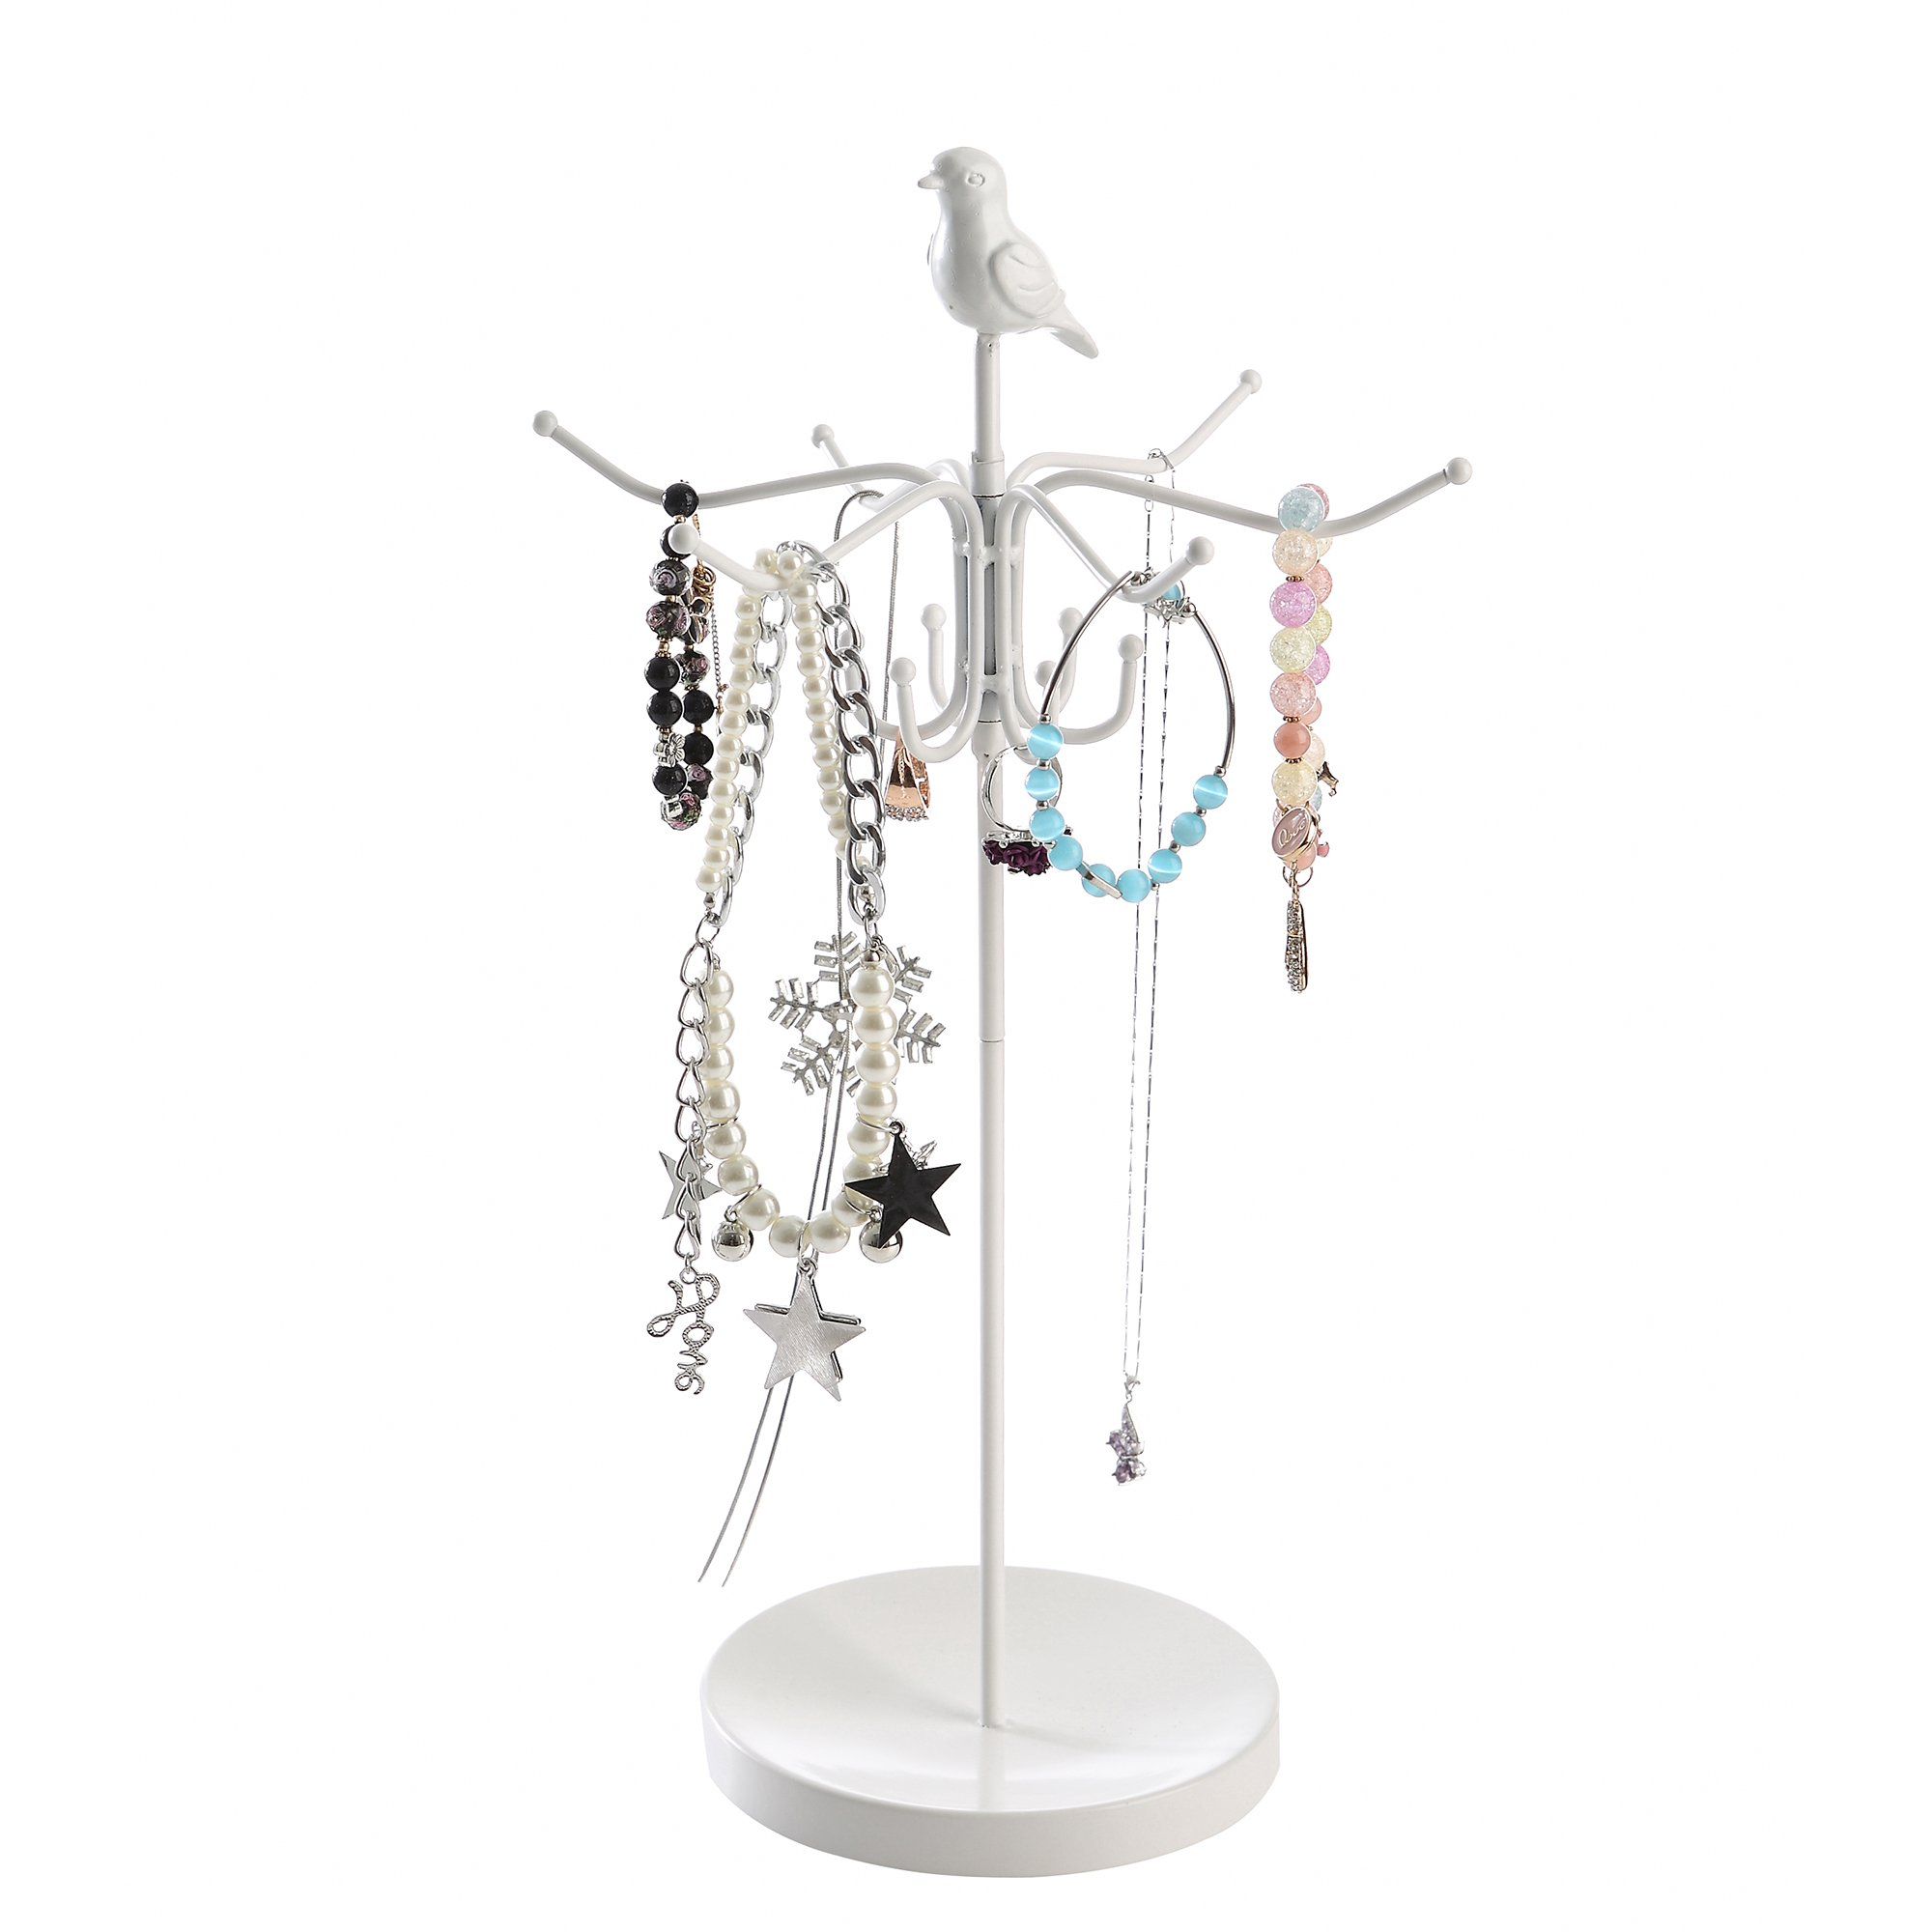 Giftway White Rotating Necklace Holder, Bracelet Stand Jewelry Tree Organizer with Bird on The Top